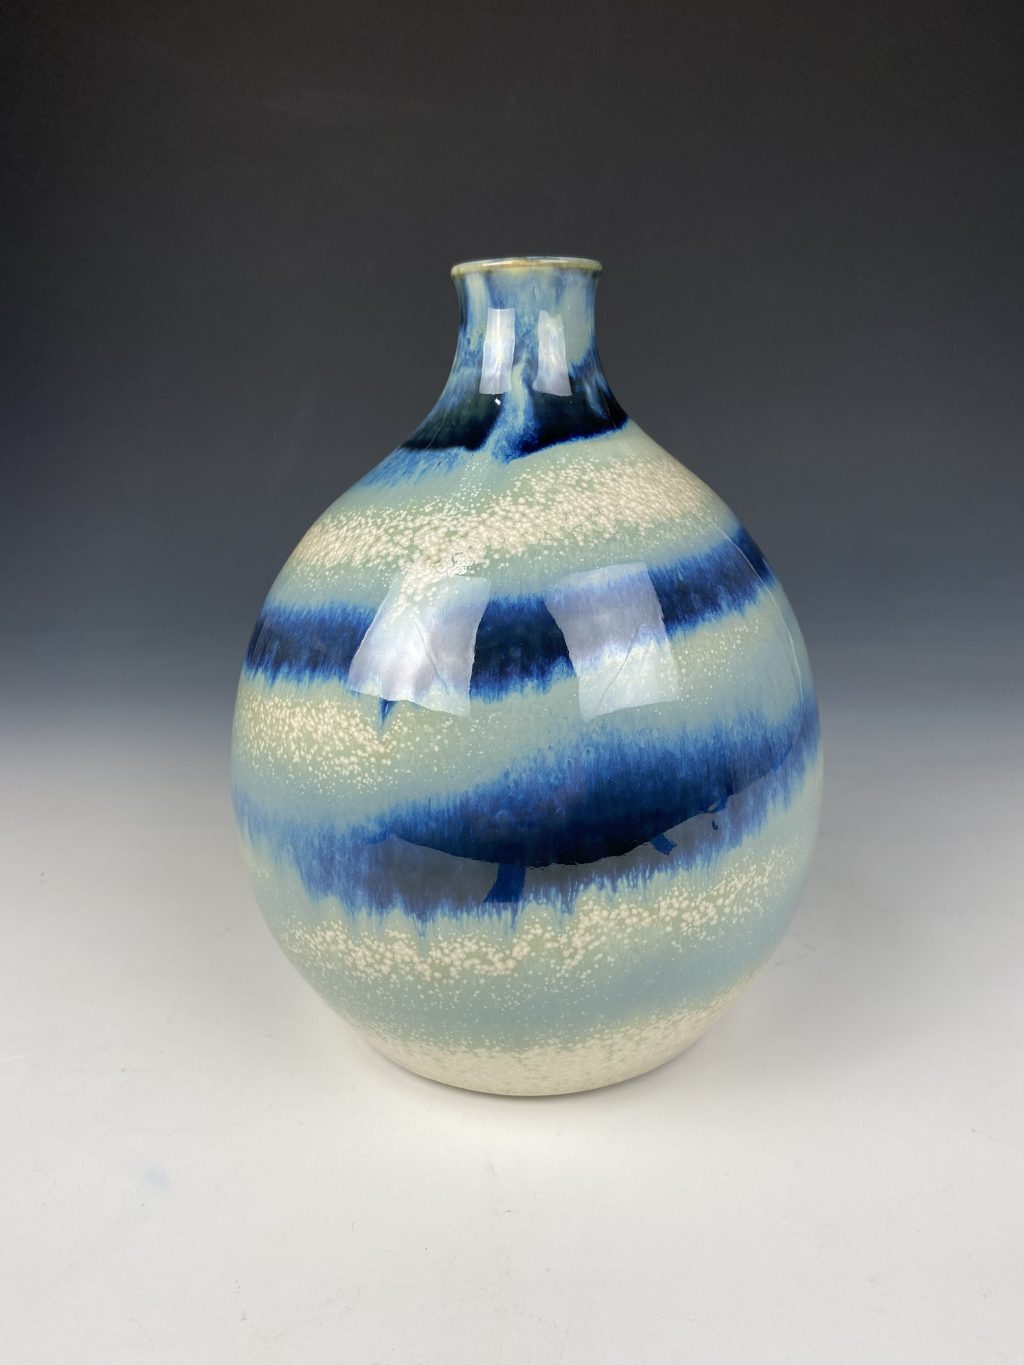 the village potters clay center, asheville nc, pottery, ceramics, online shop, wheel thrown pottery, vase, katie meili messersmith